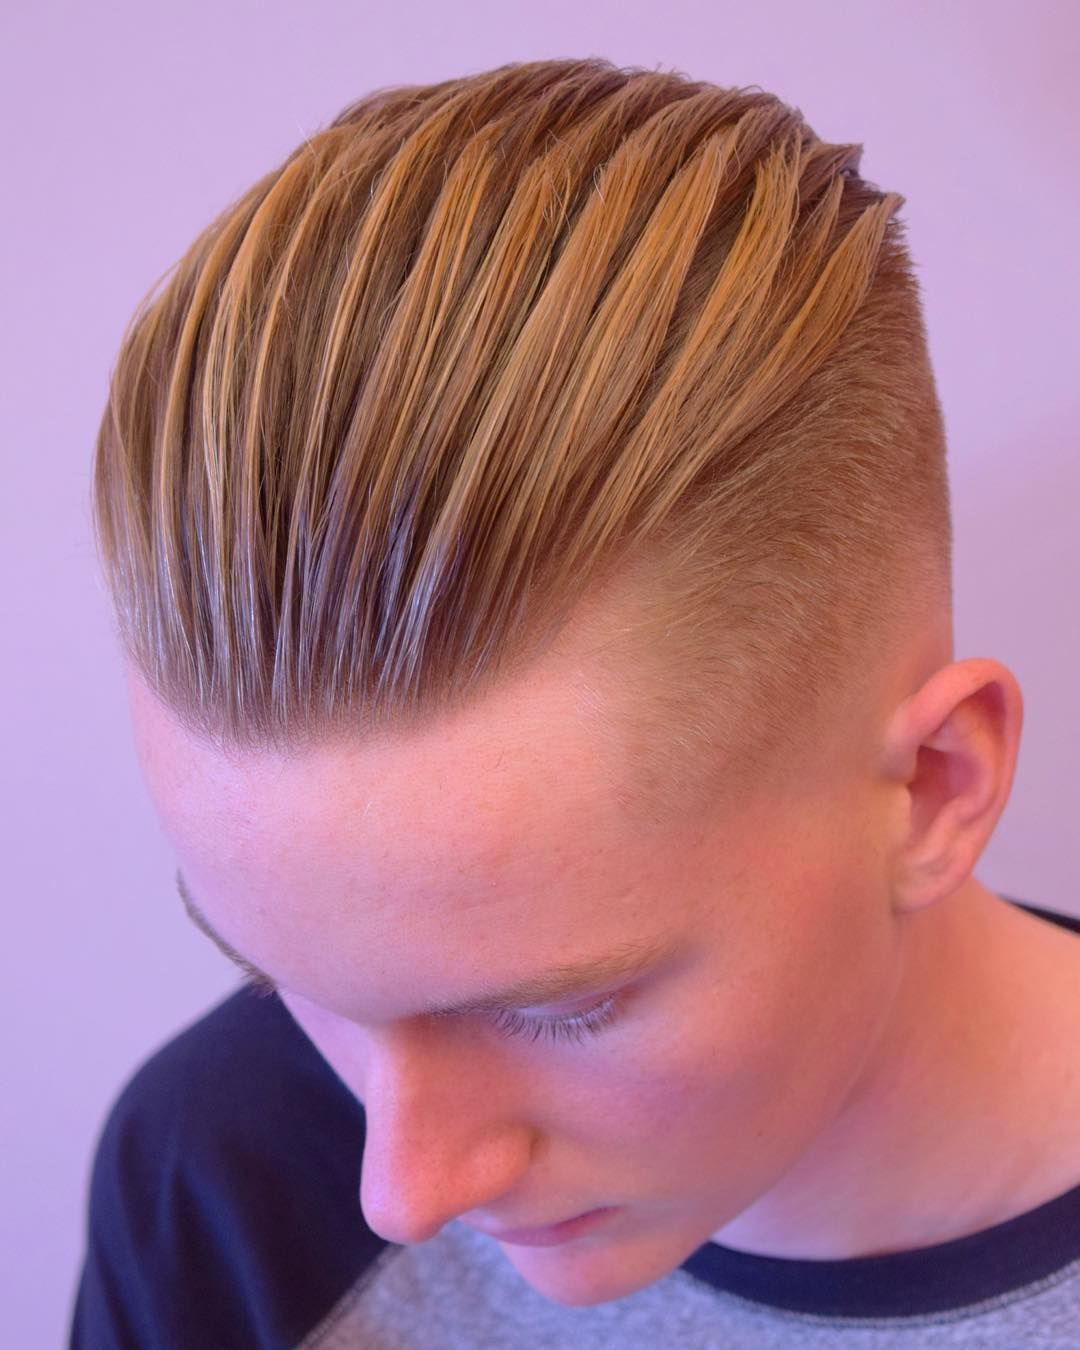 The temple is the ability to show individuality. Bold haircut